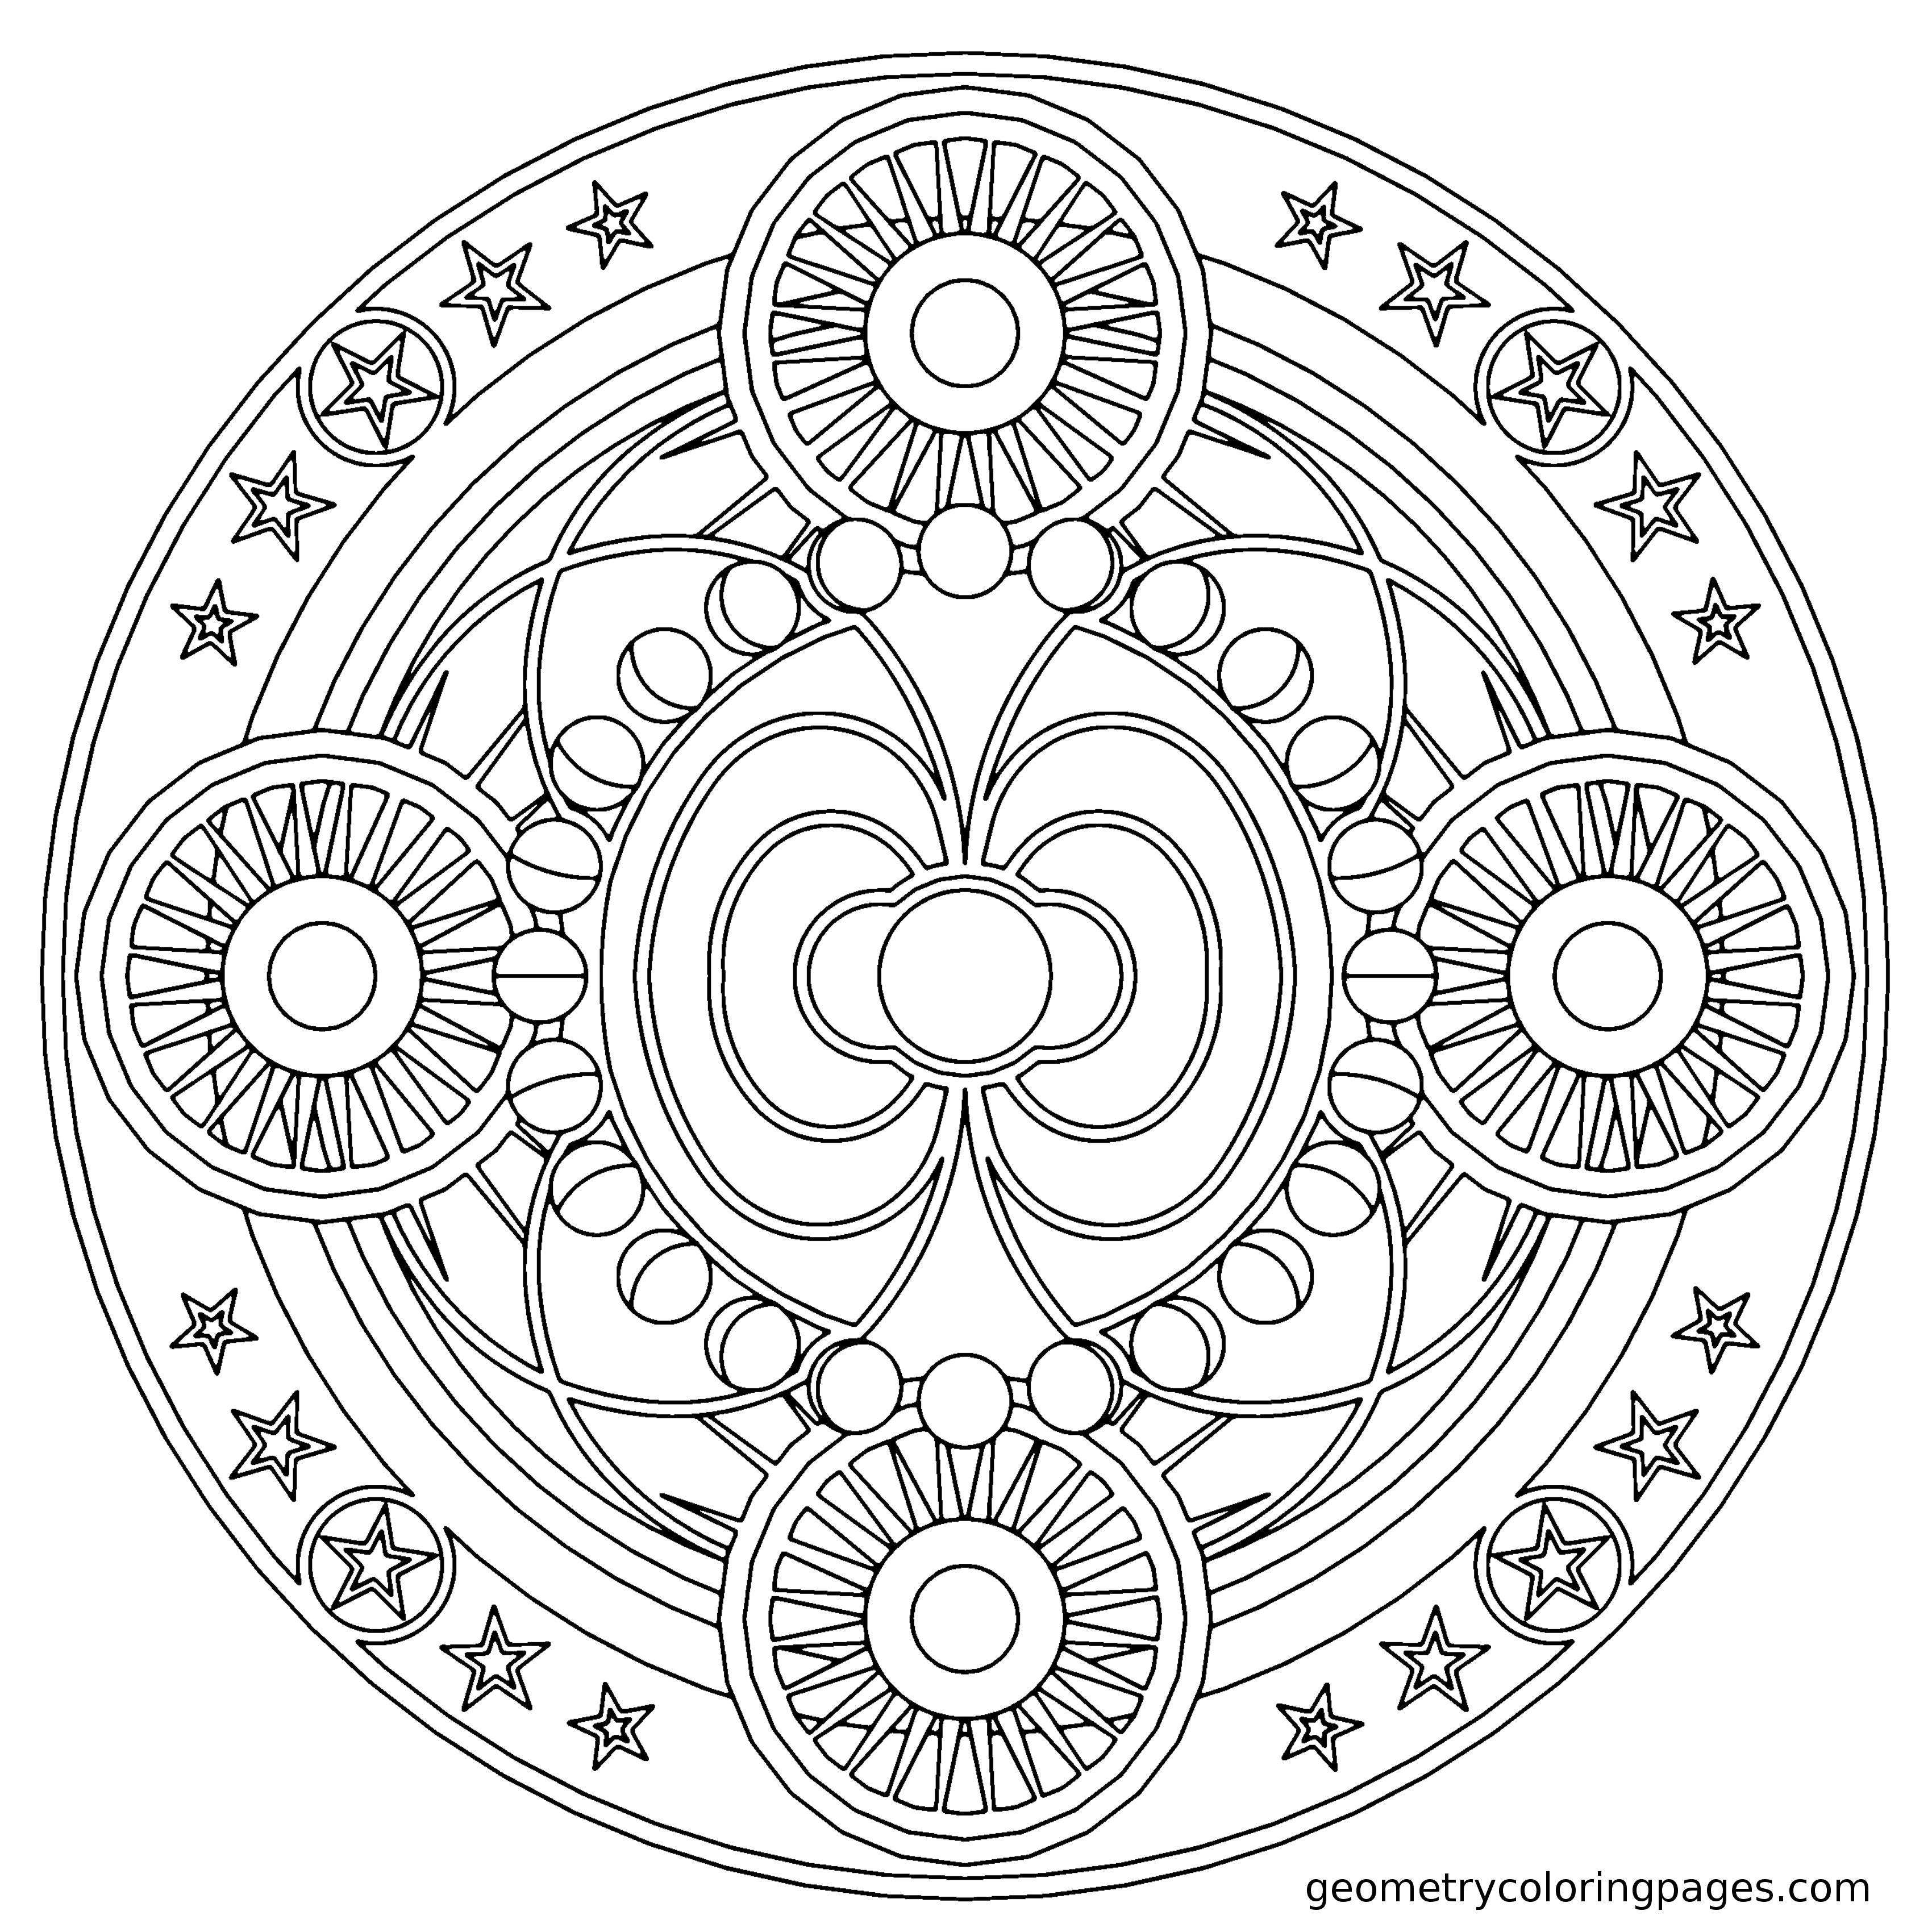 3400x3400 Happy Kids Earth Day Coloring Page For Kids Coloring Pages